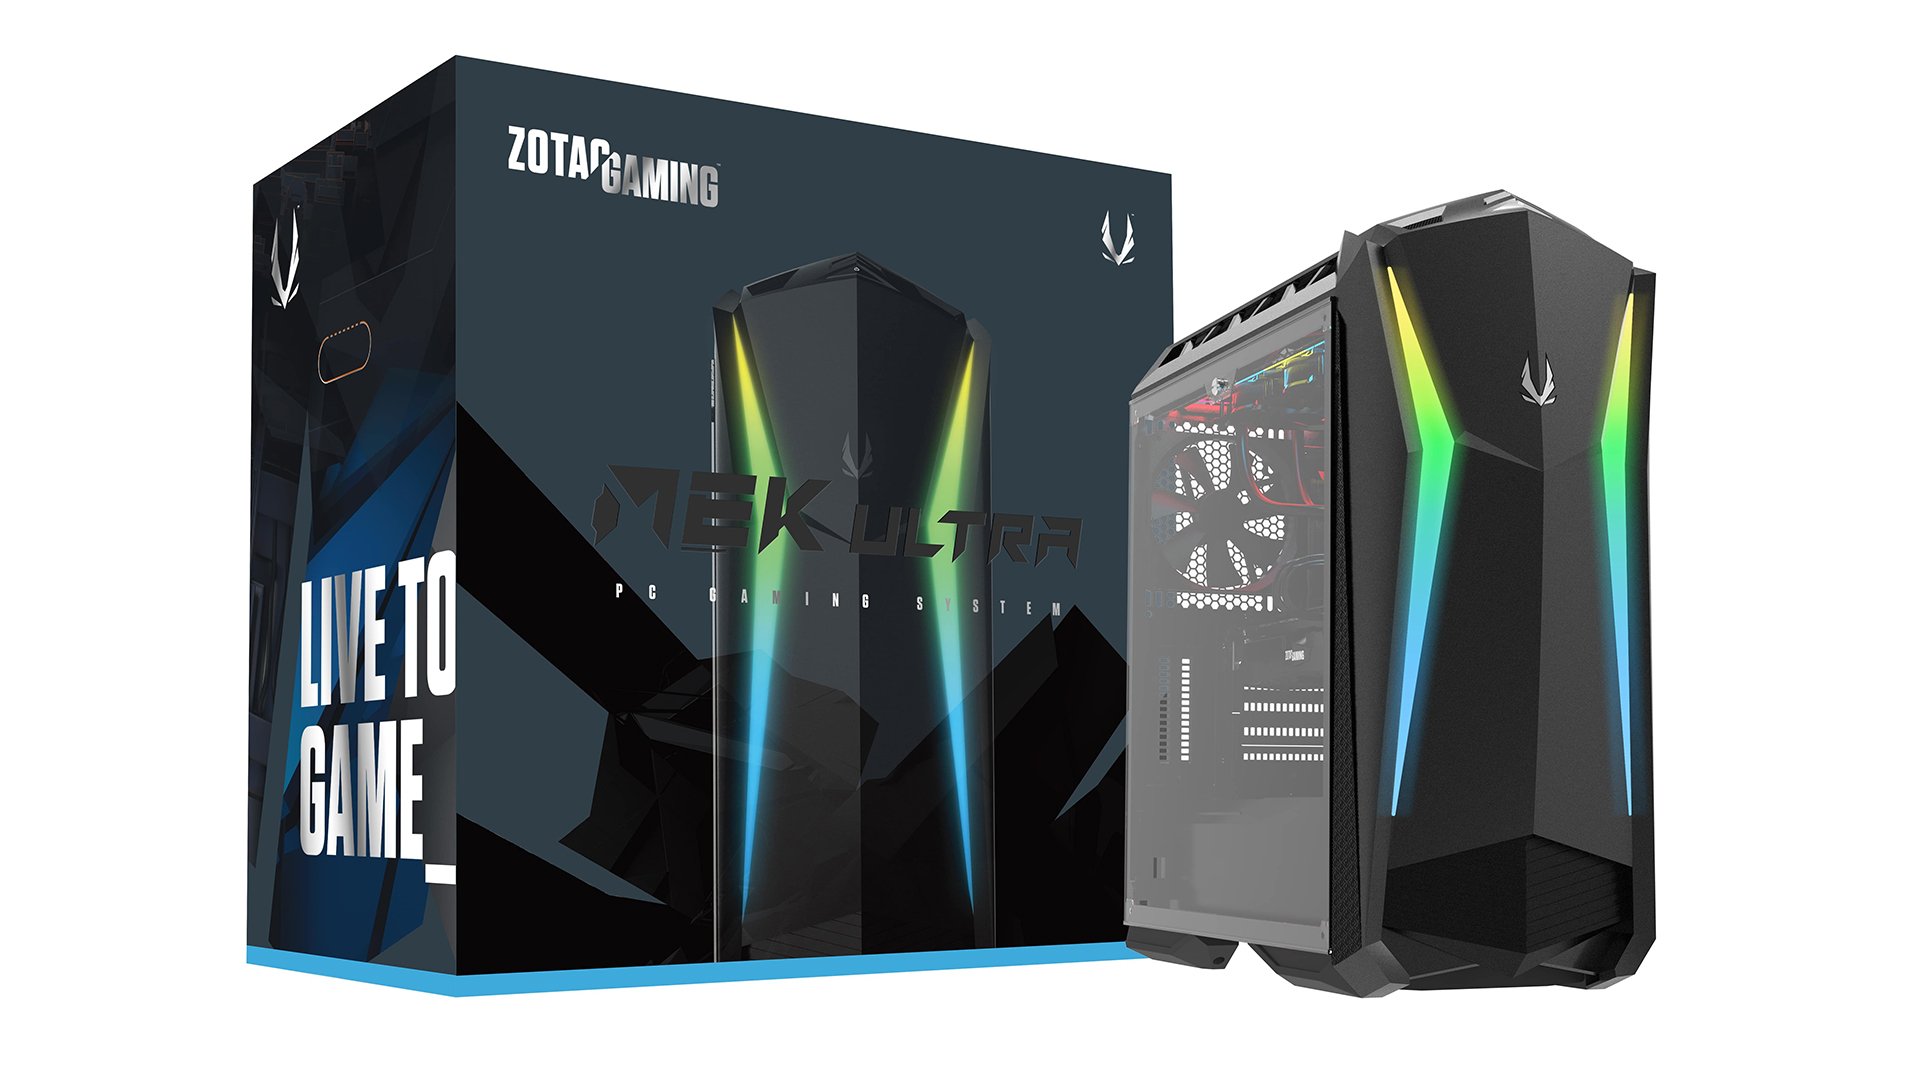 Zotac Gaming MEK Ultra PC - 01